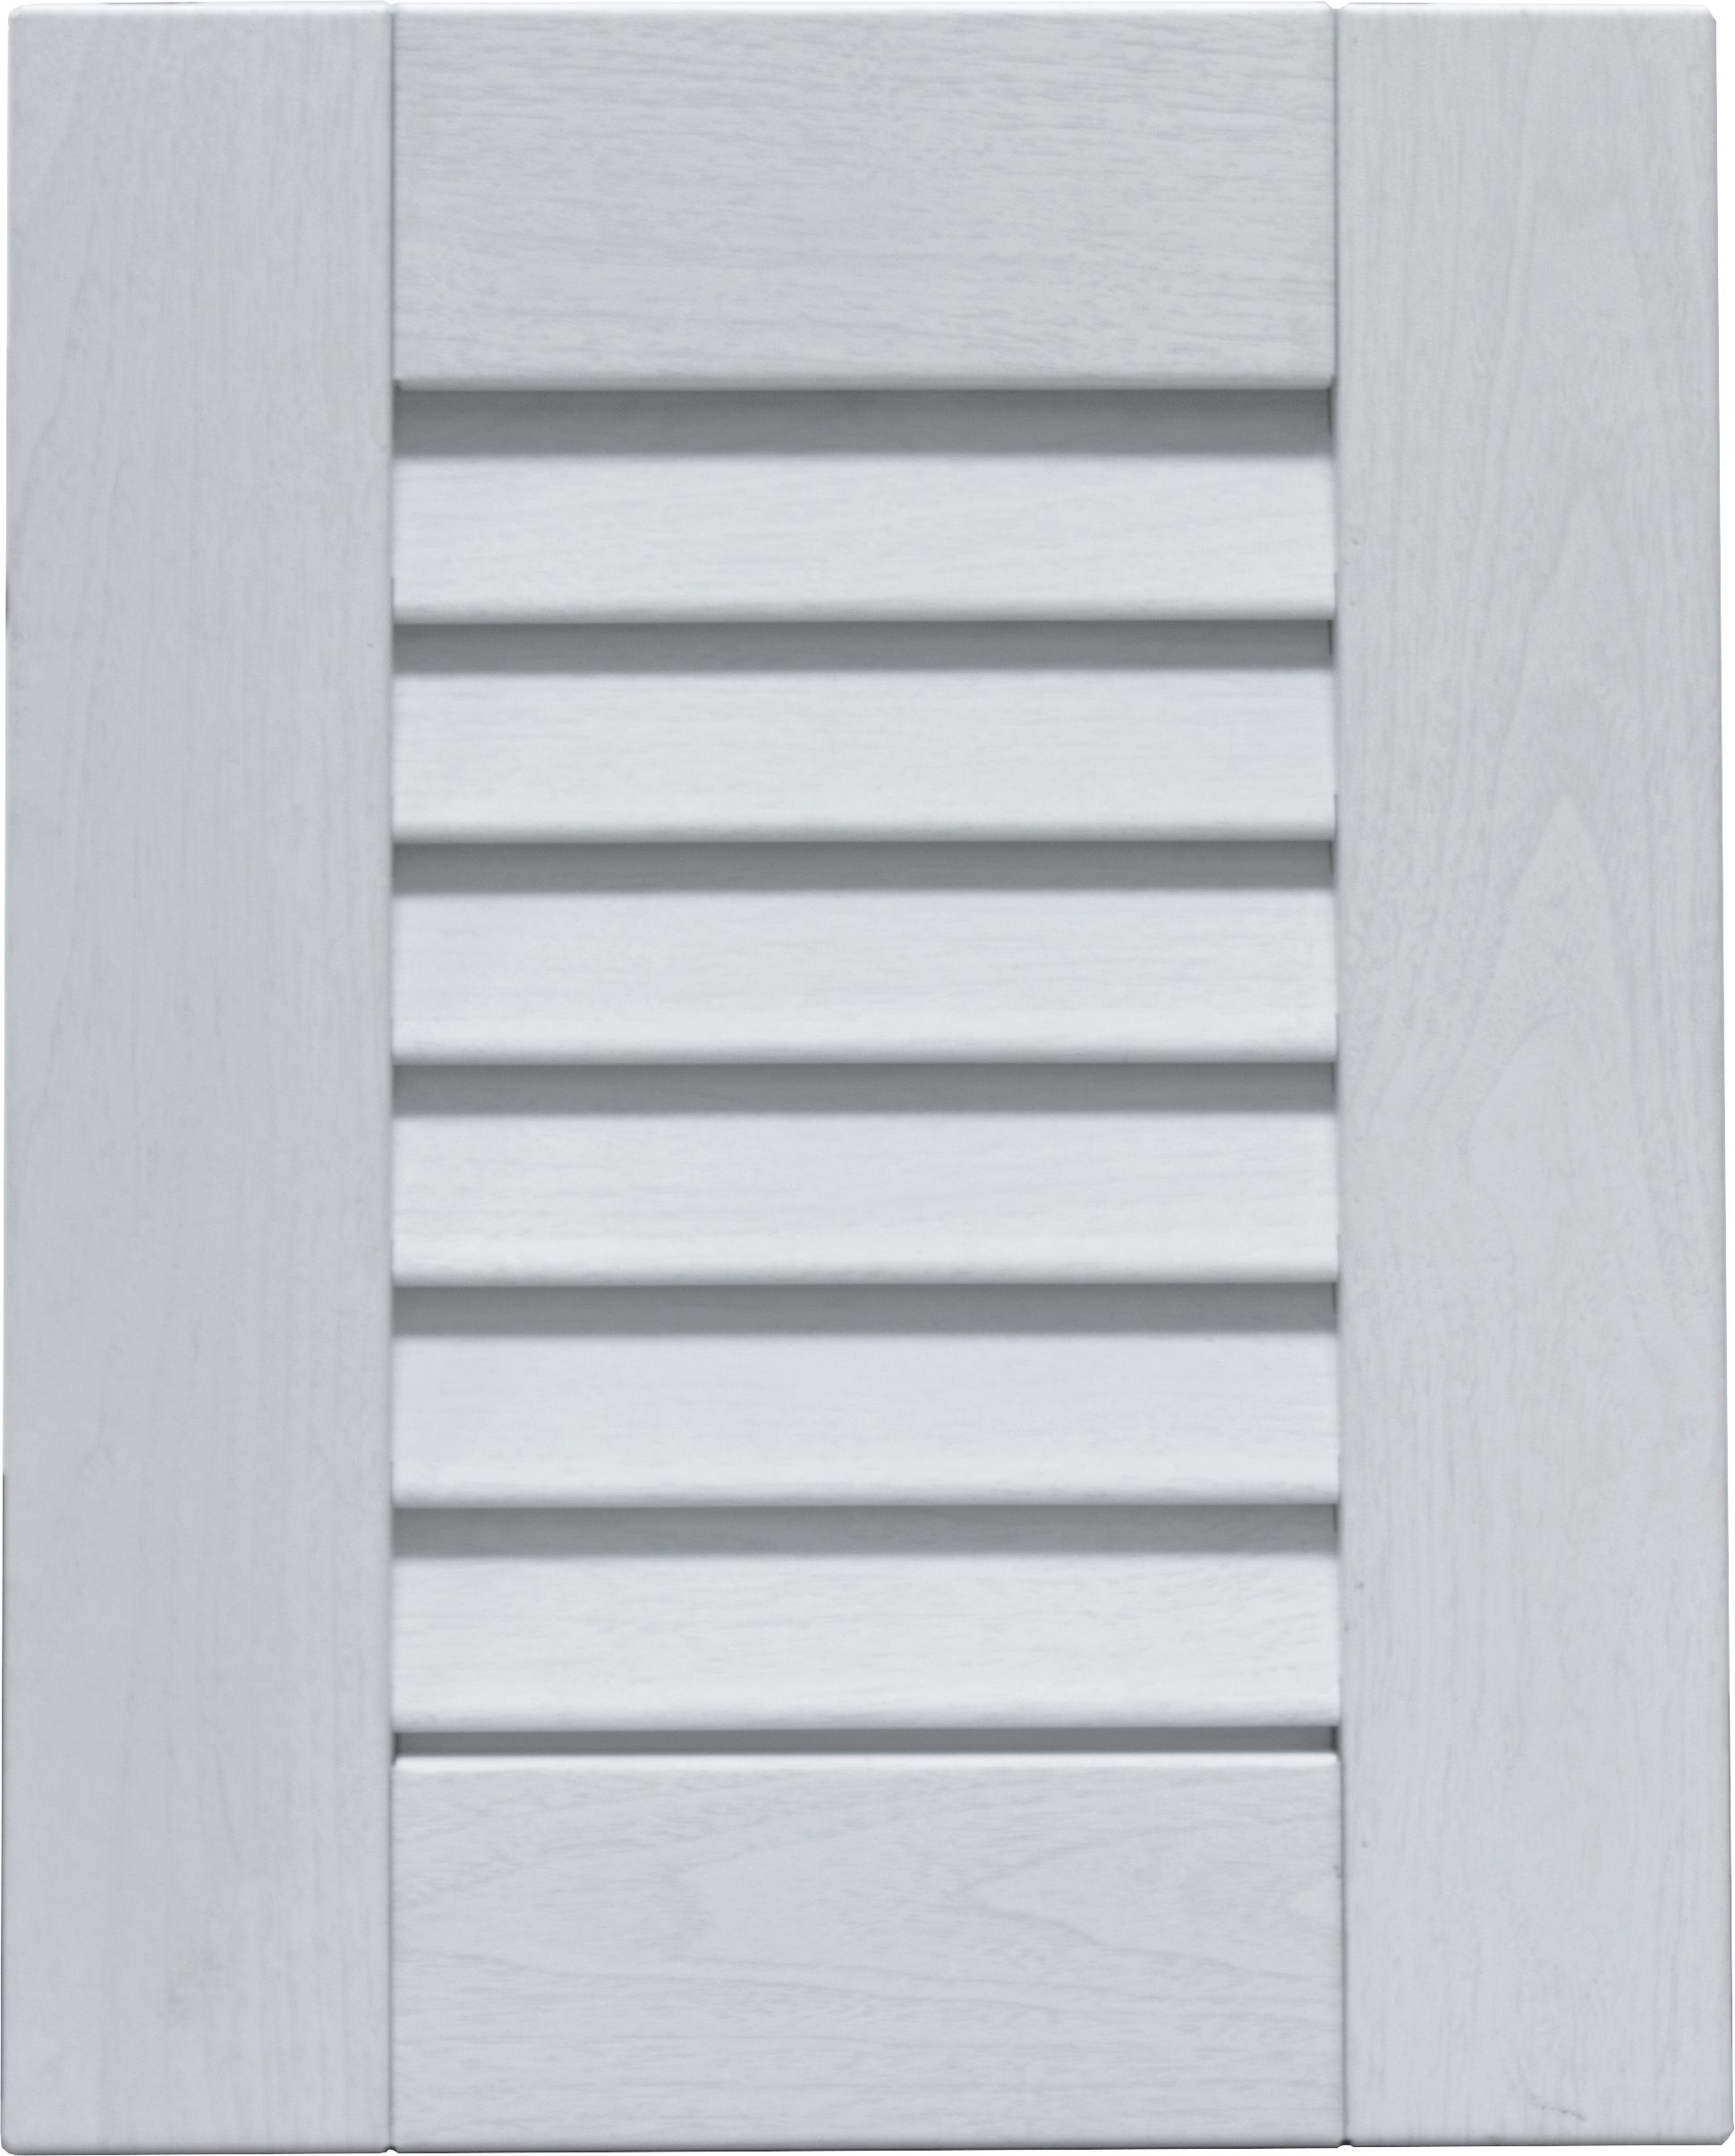 Miraculous Louver Door Style In White Washed Wood Woodgrain Powder Coat Download Free Architecture Designs Scobabritishbridgeorg